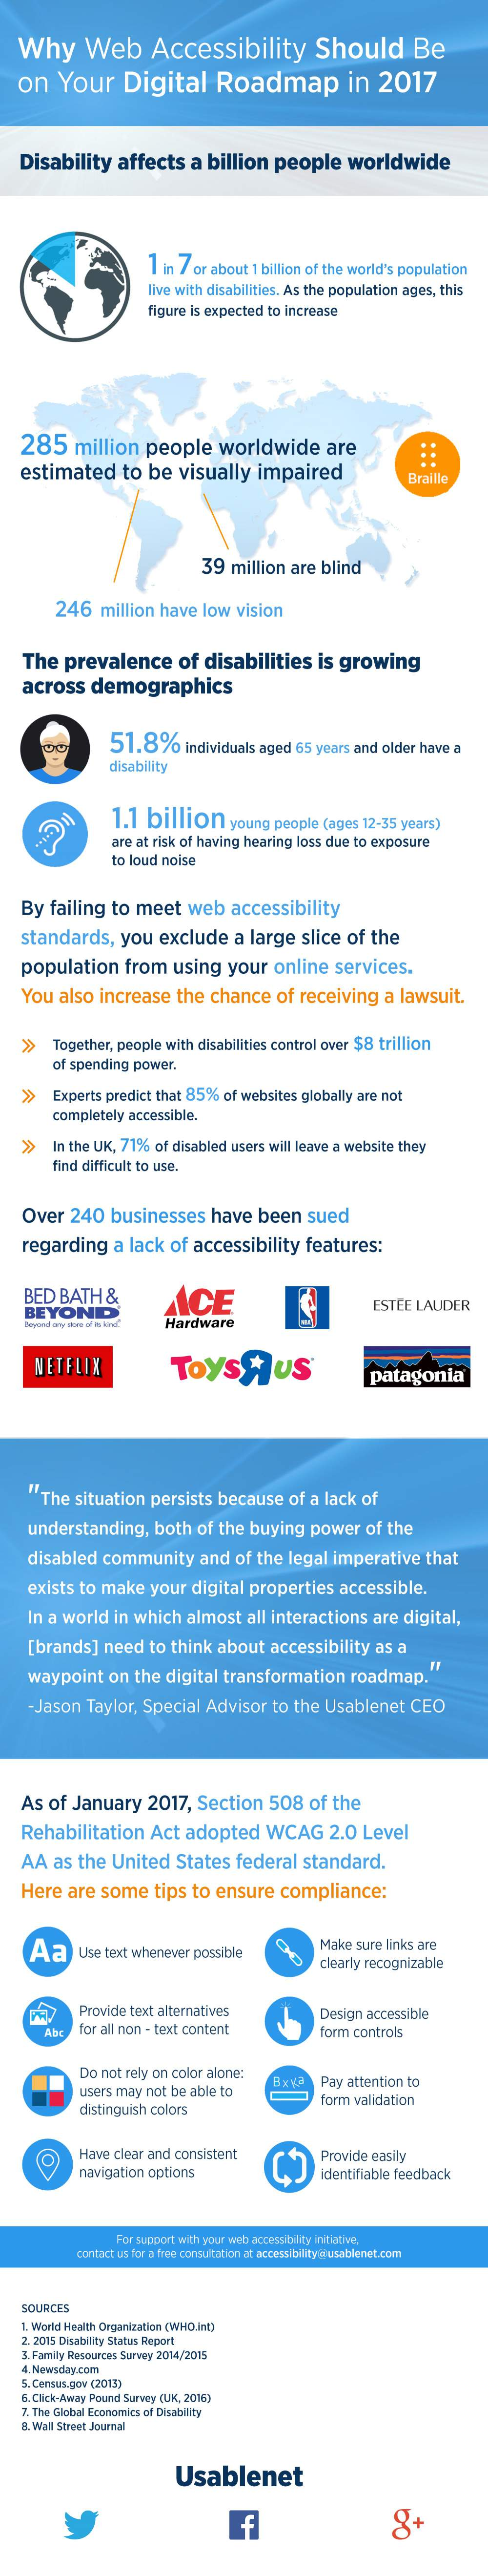 Web Accessibility 2017 Infographic